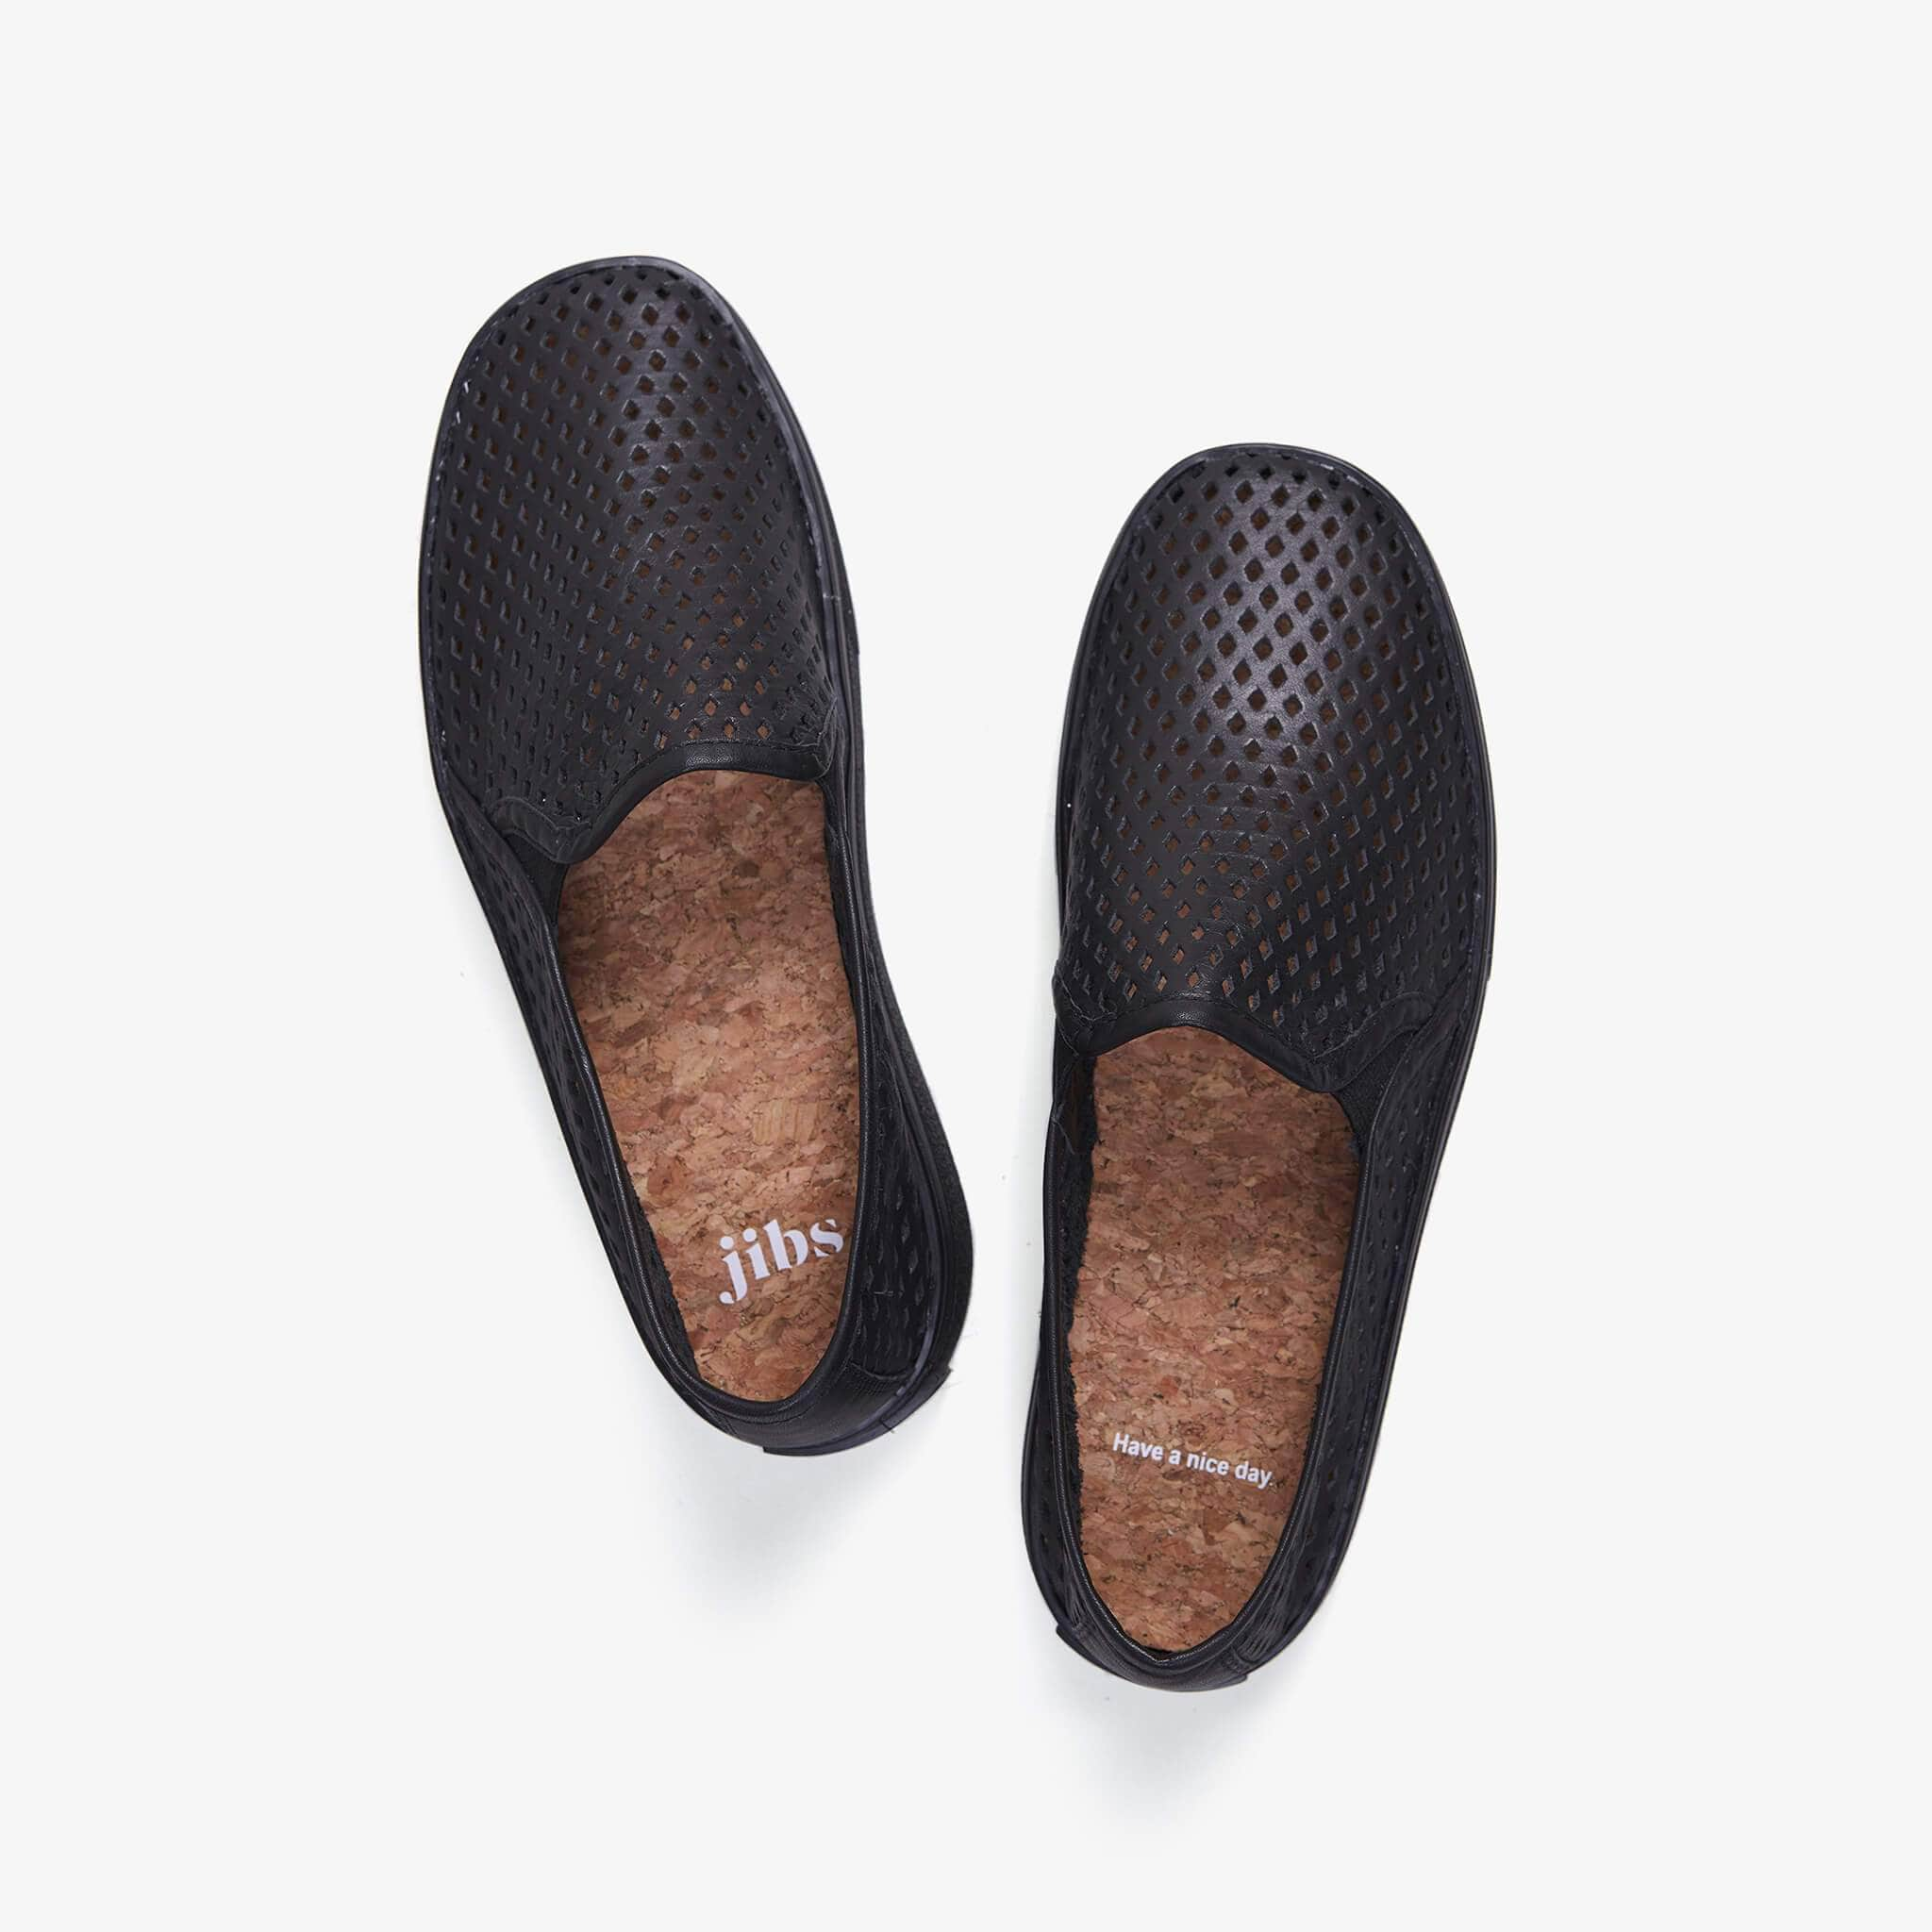 Jibs Classic Jet Black Royale Slip On Sneaker-Shoe Have A Nice Day Cork In-sole